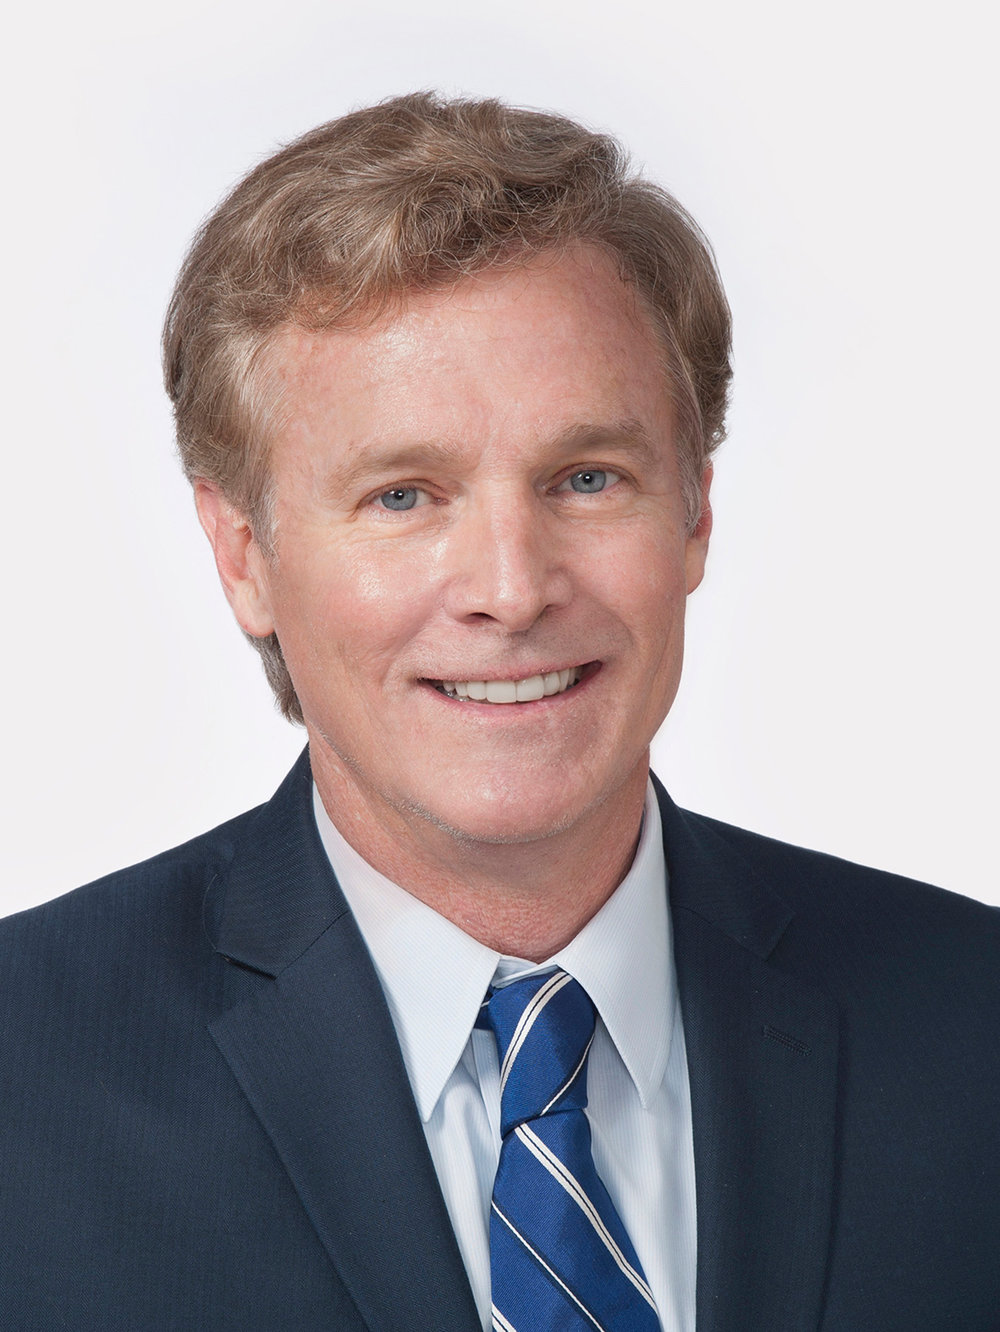 Donald L. Hagan, CFA, Partner, Co-founder, and Chief Investment Strategist of Day Hagan Asset Management in Sarasota, FL.